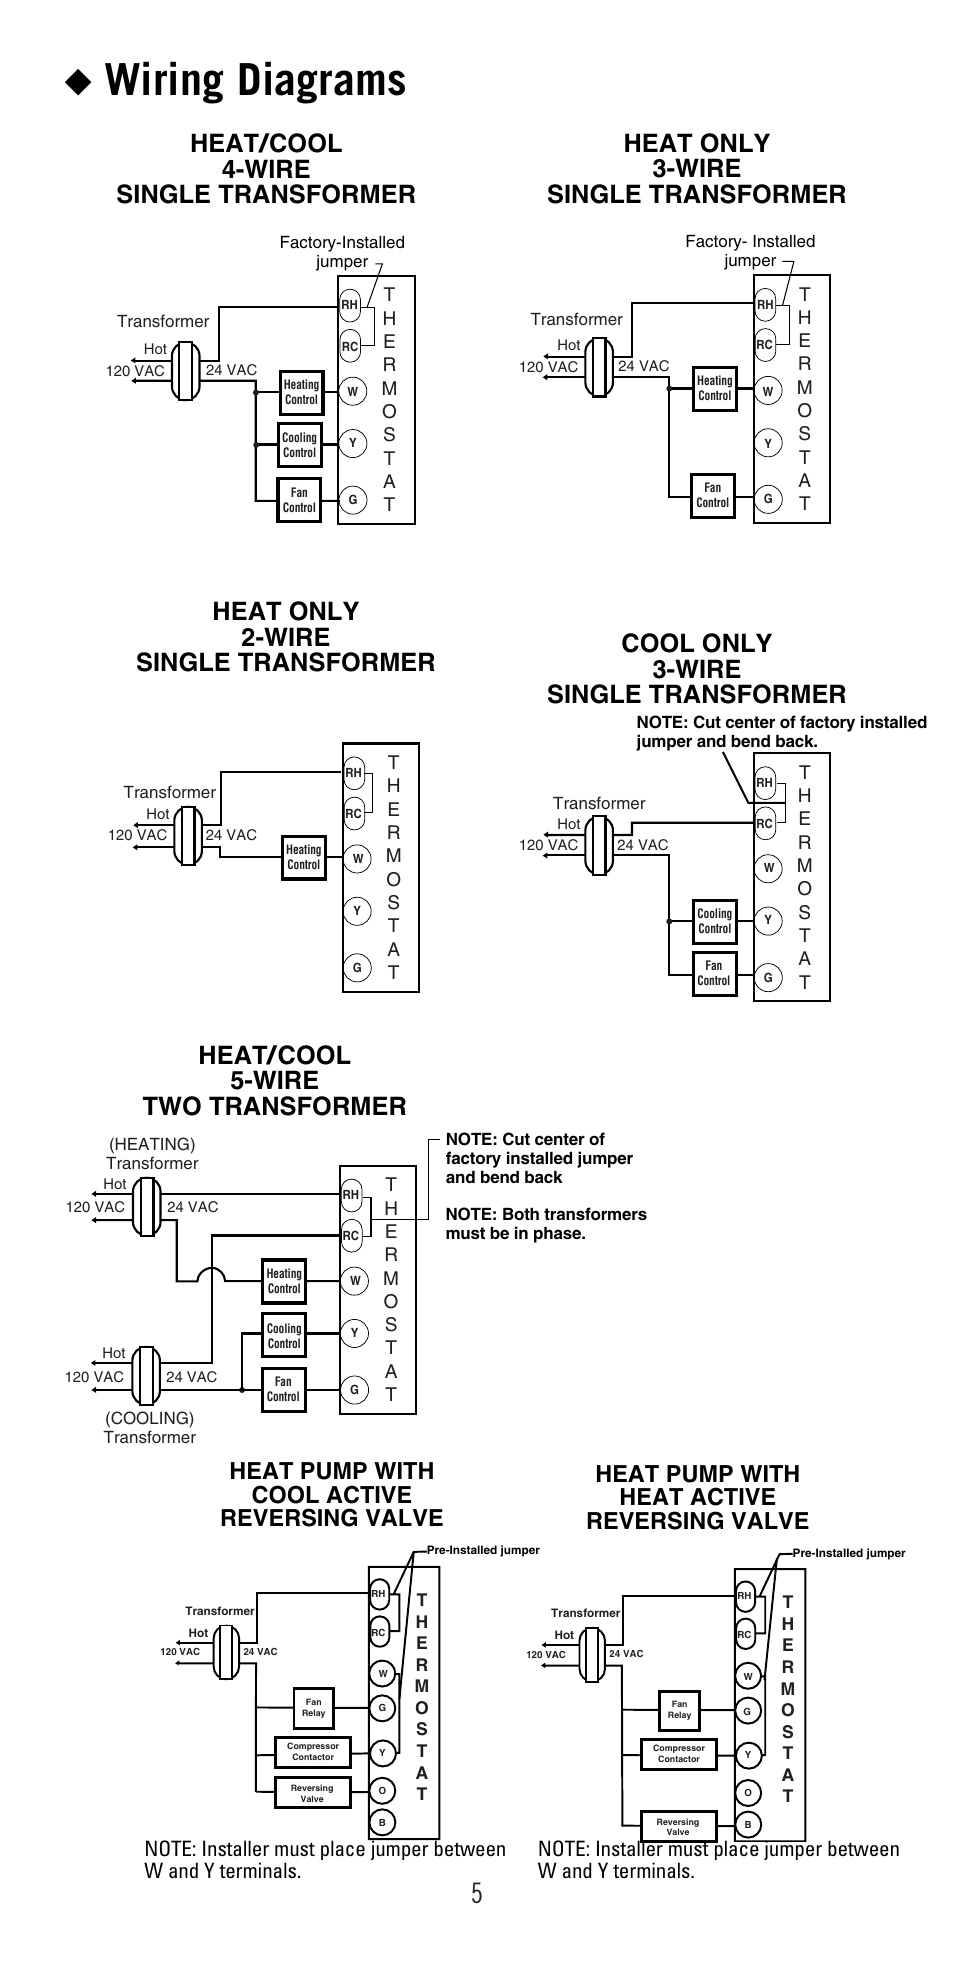 hight resolution of wiring diagrams heat pump with cool active reversing valve heat pump with heat active